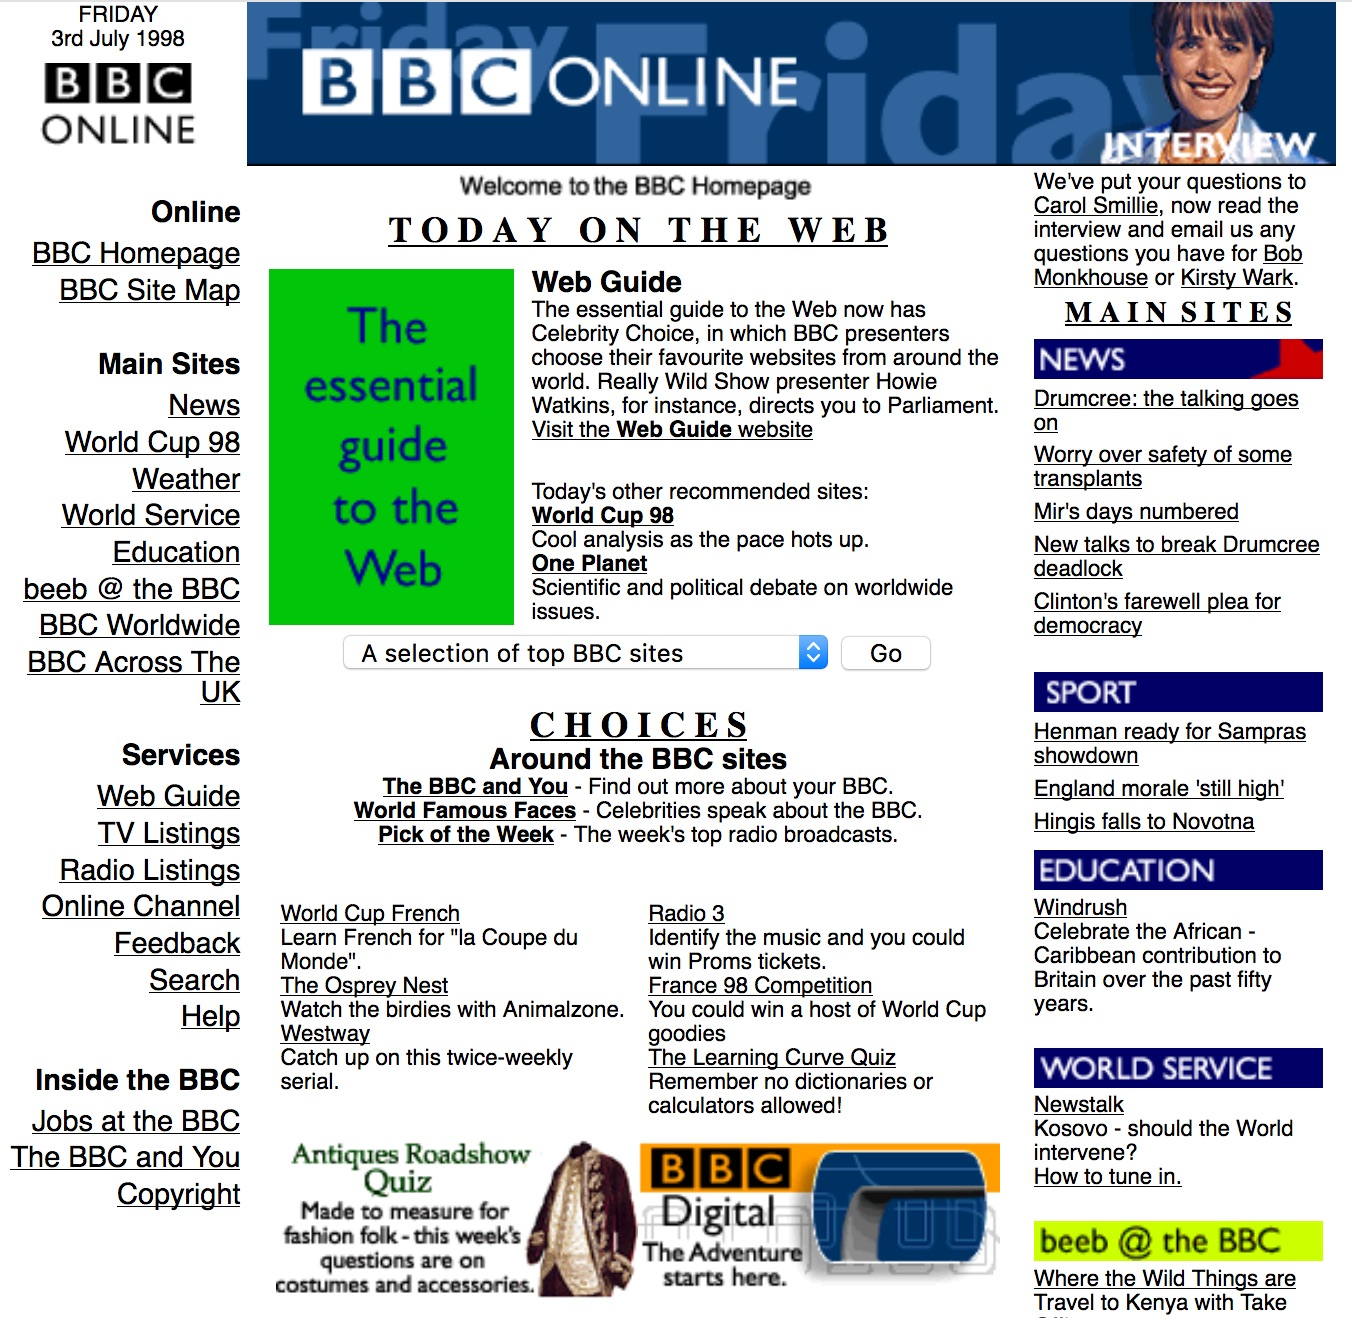 BBC.co.uk Homepage (1998)